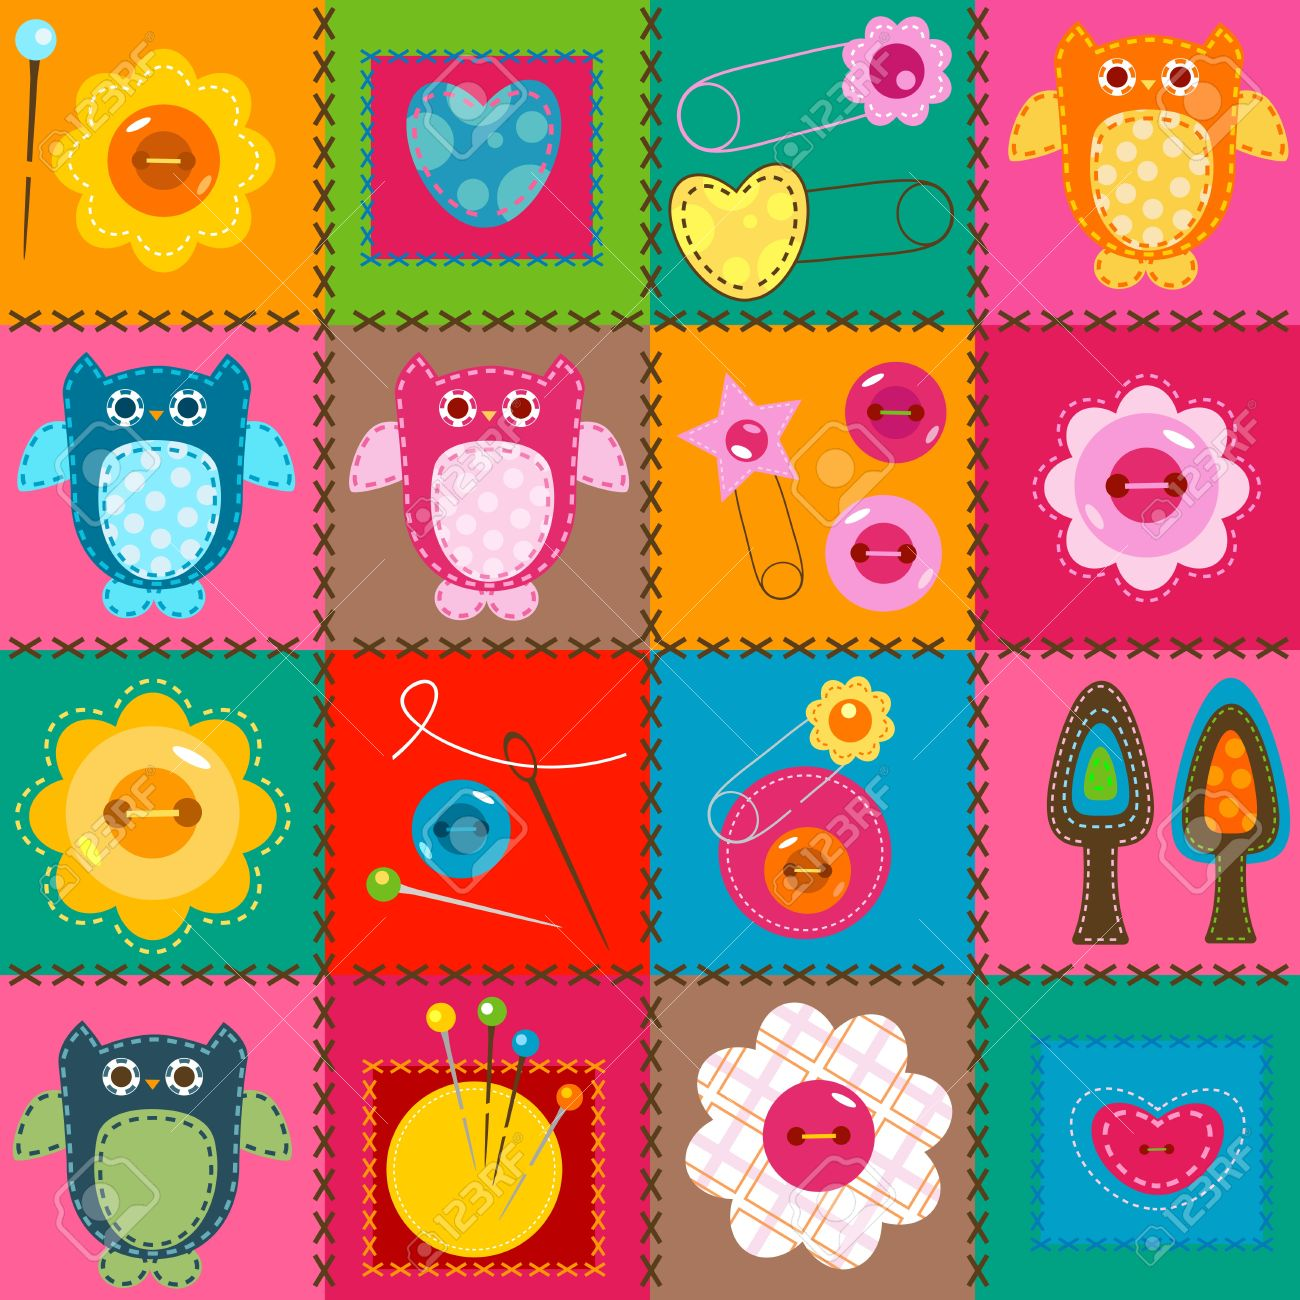 stitch owls on a colorful background for babies stock vector 18004325